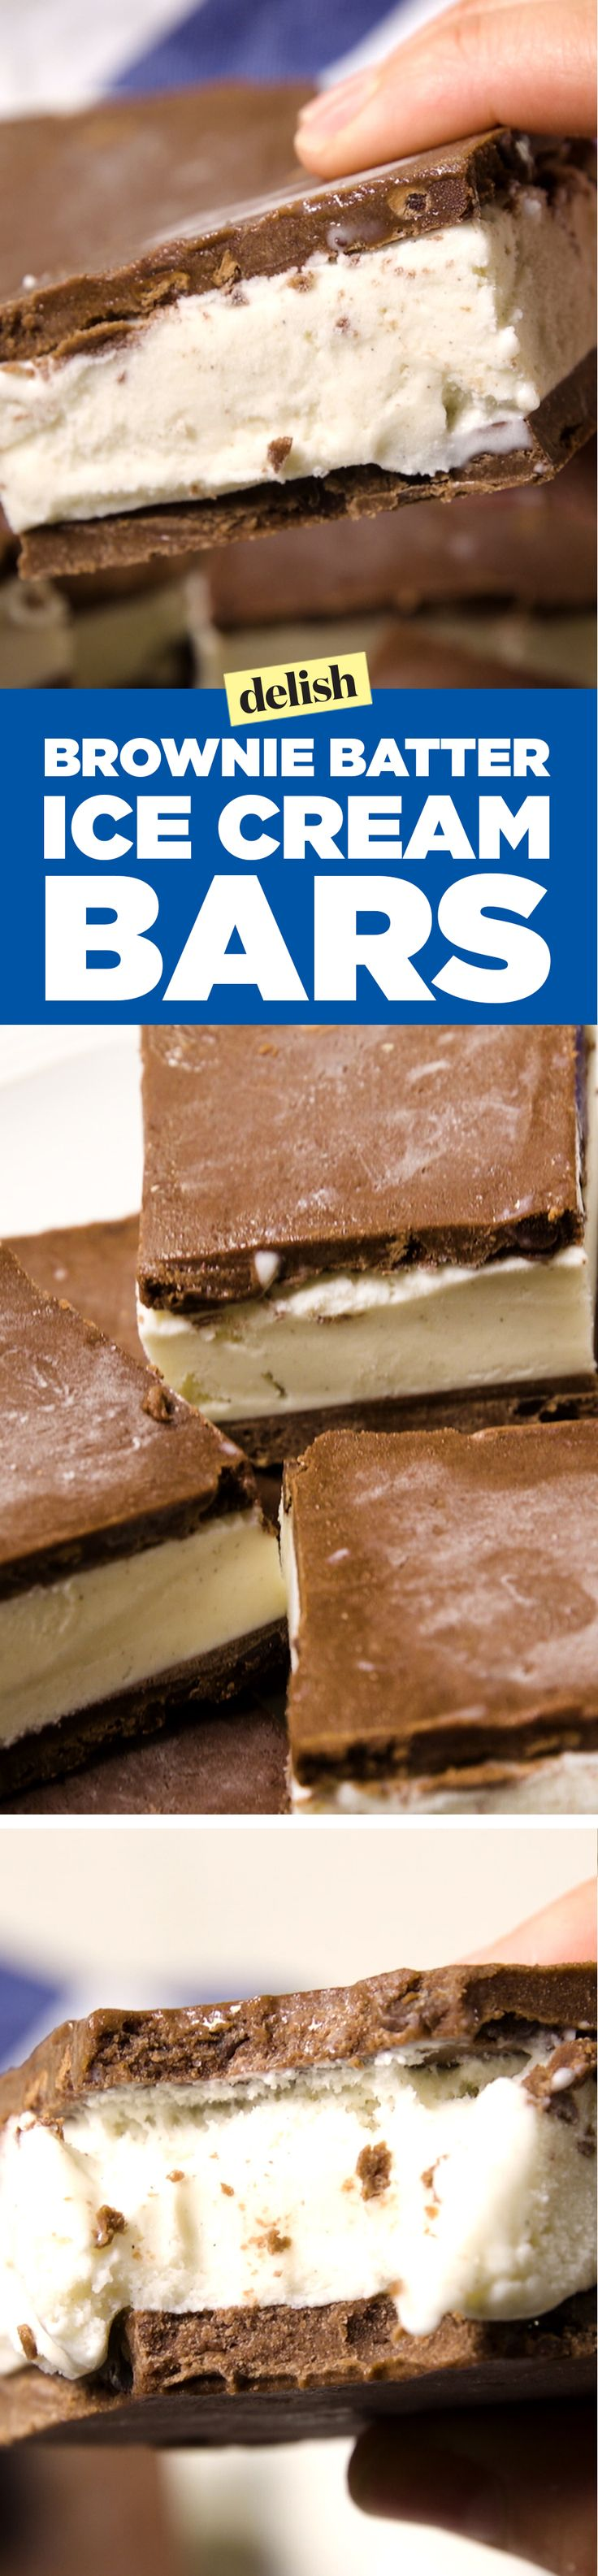 These brownie batter ice cream bars are really raising the dessert bar high. Get the recipe on Delish.com.